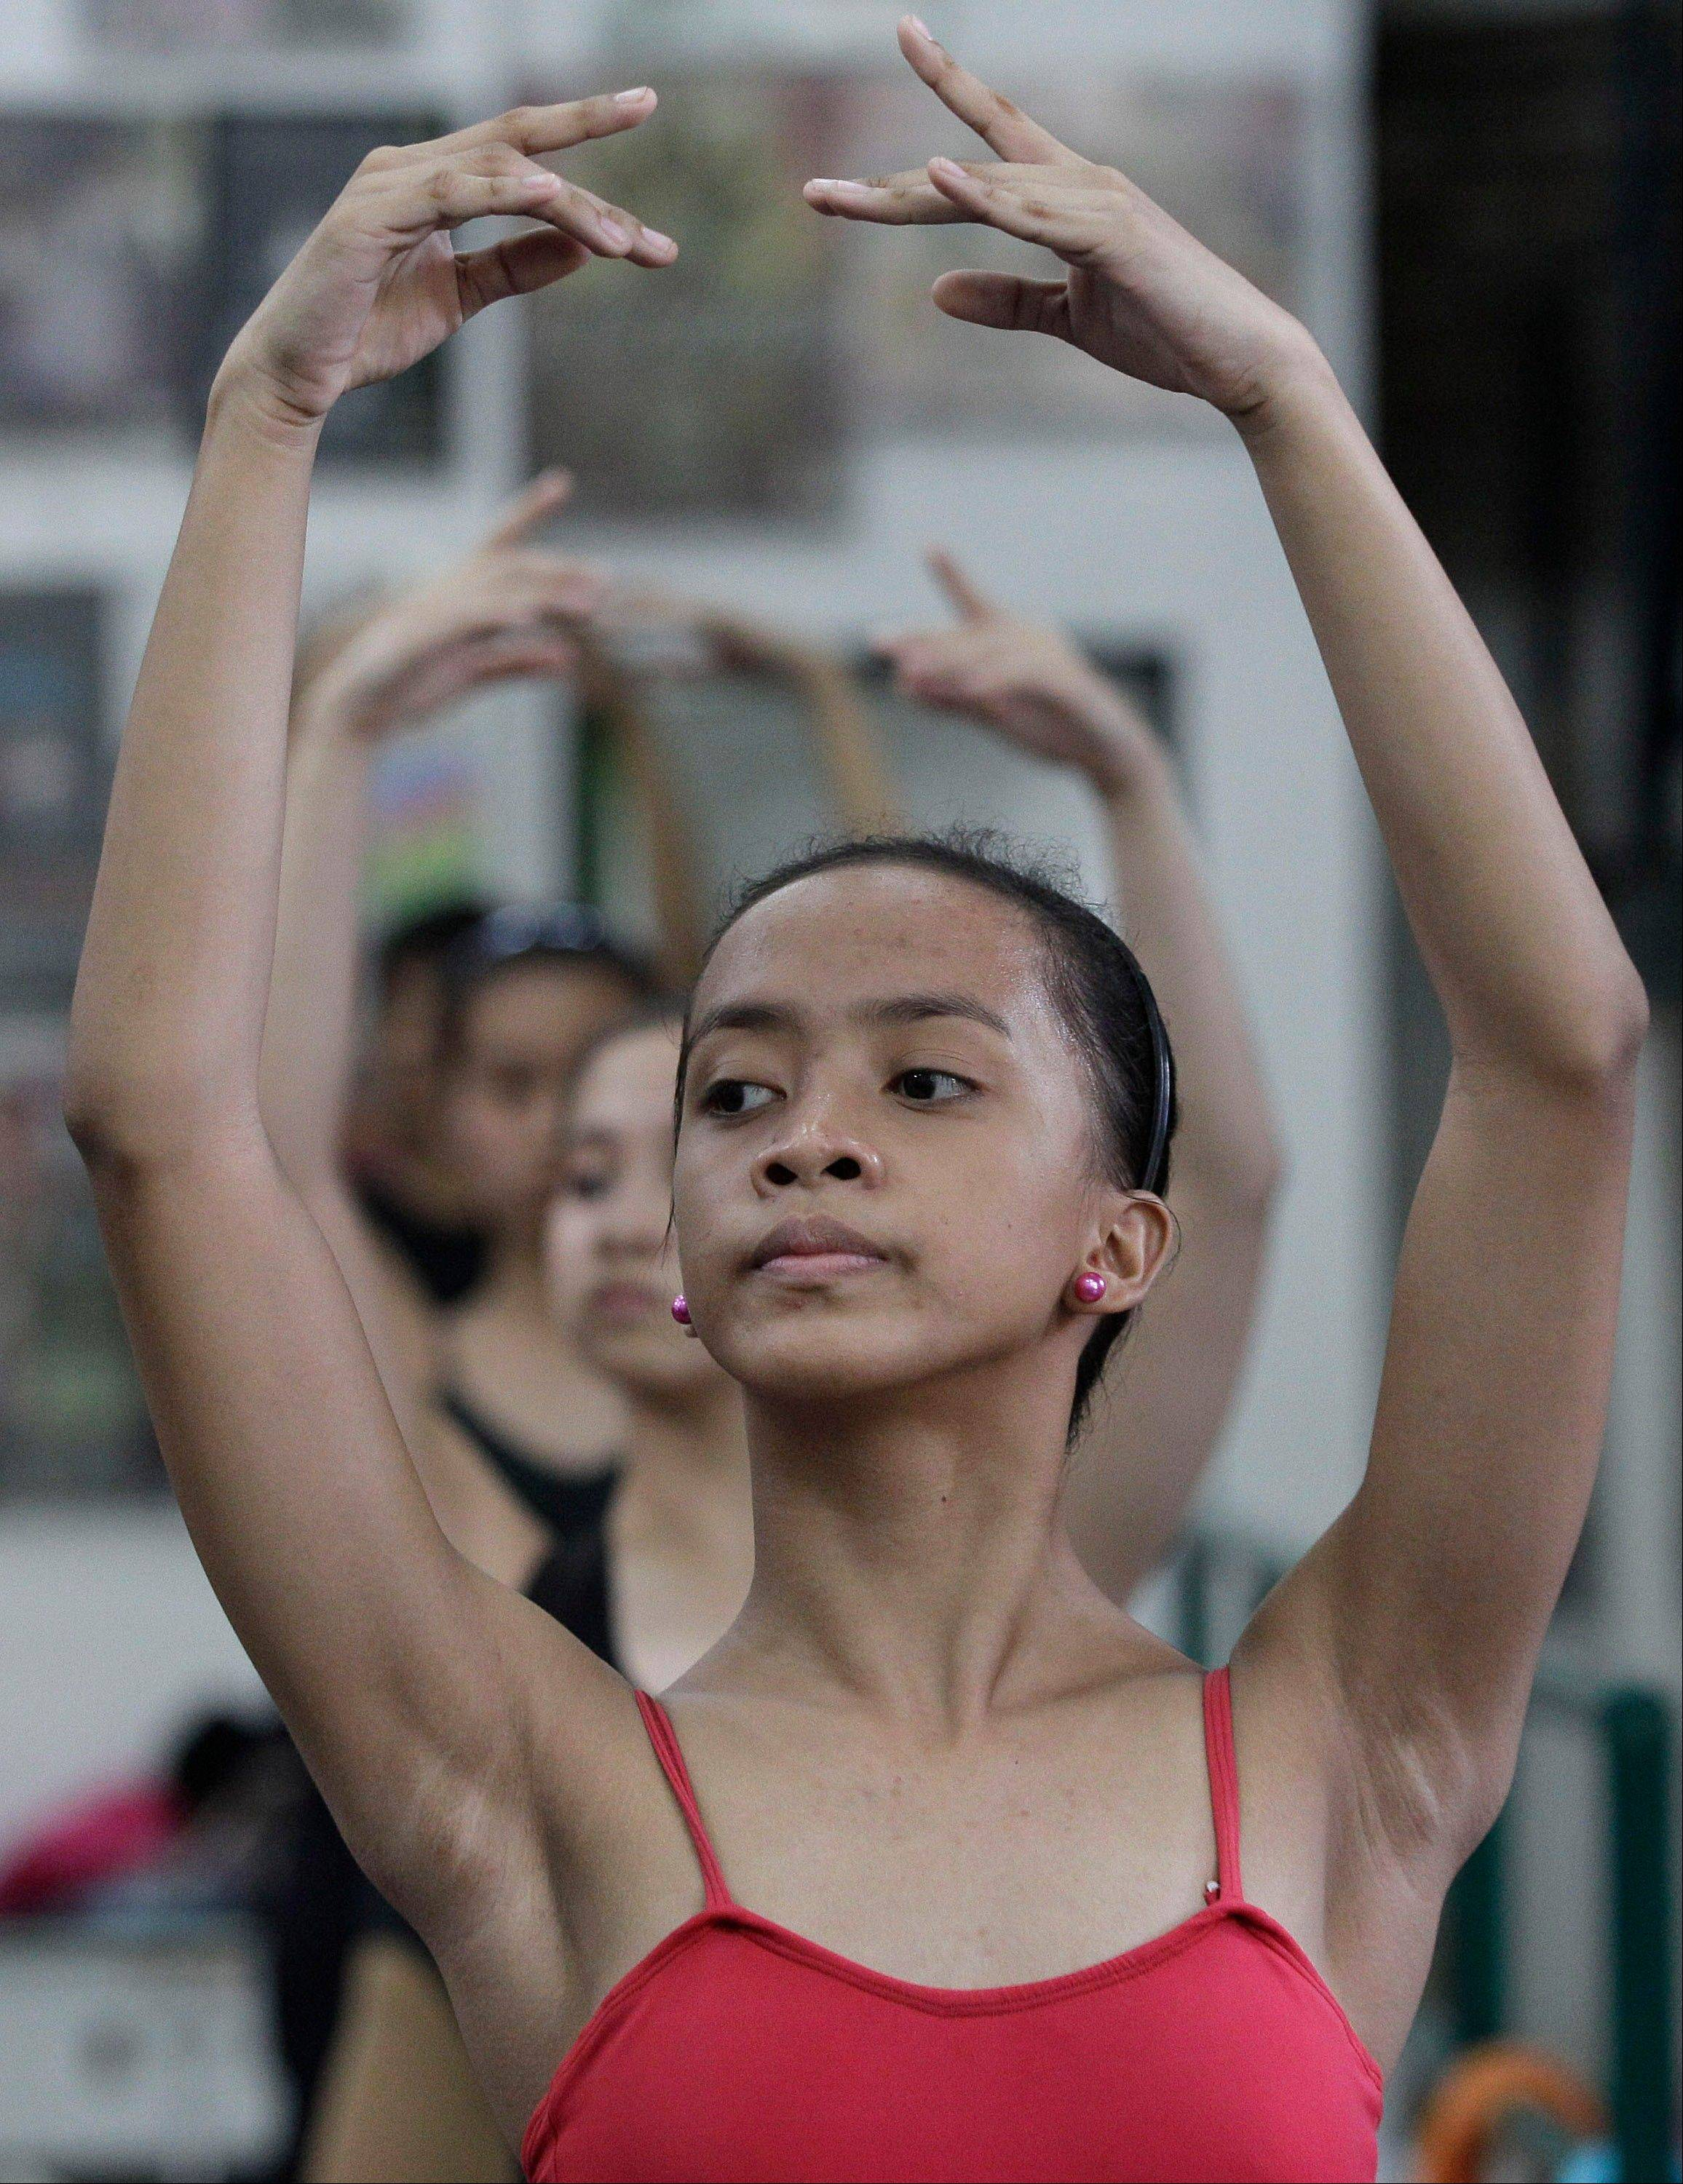 Jessa Balote rehearses during a class at Ballet Manila. Balote, who used to tag along with her family as they collect garbage at a nearby dumpsite, is a scholar at Ballet Manila's dance program.